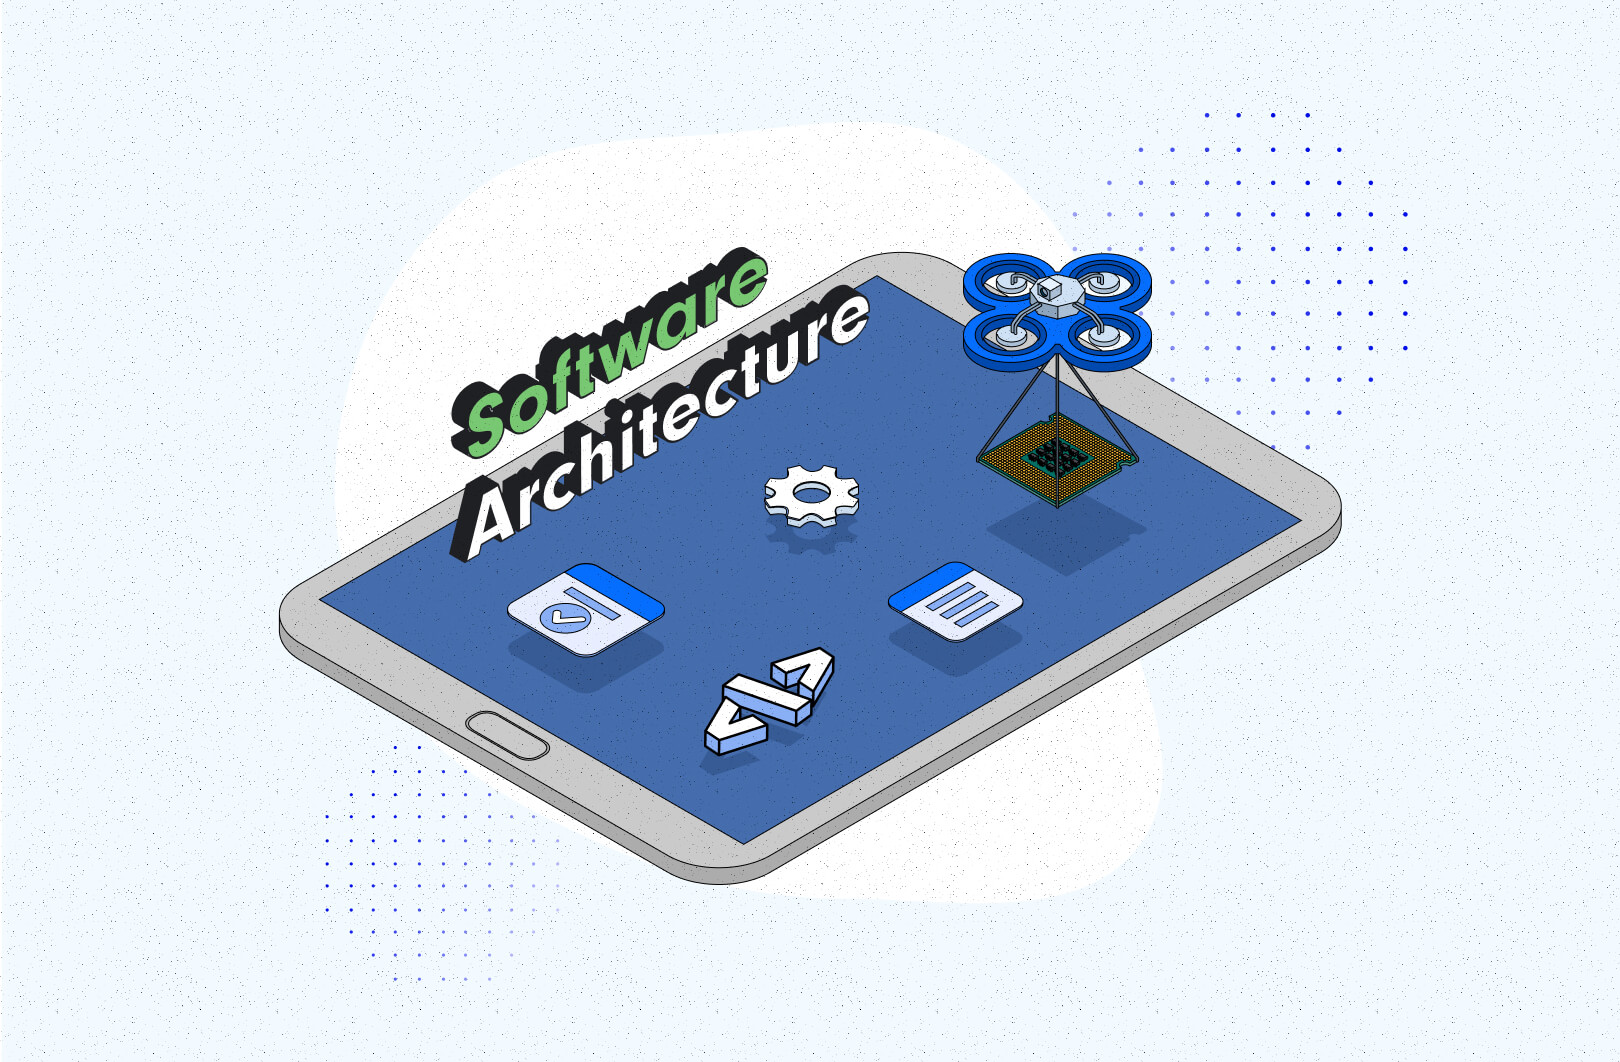 All about #1... software architecture – how to approach it in 2021 software development?